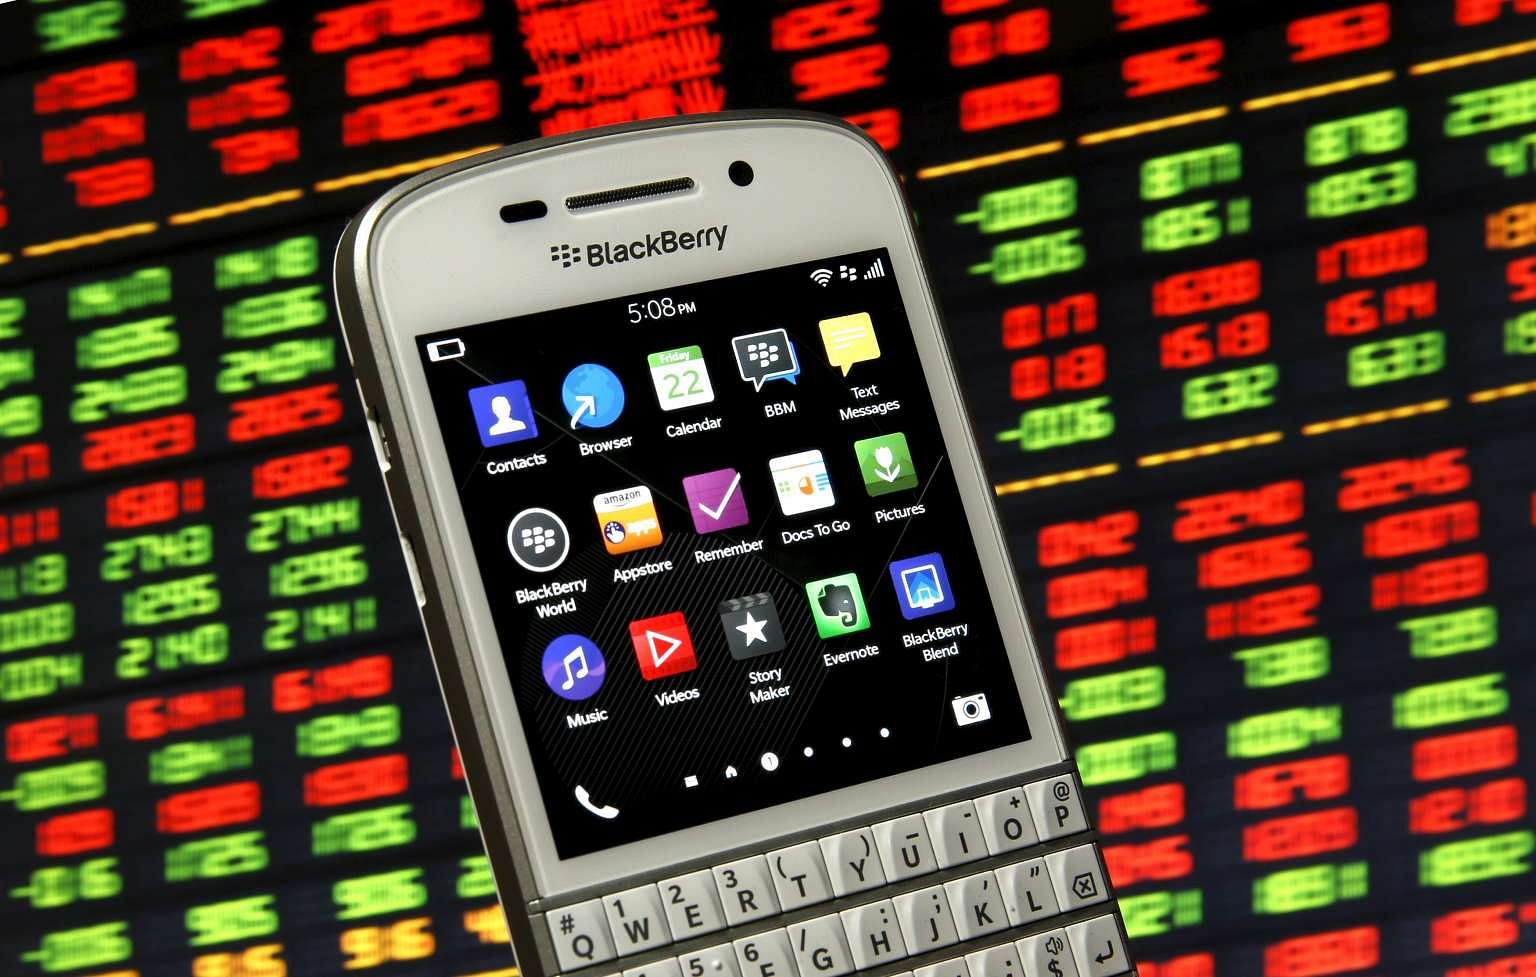 Pakistan to shut down BlackBerry services by December over